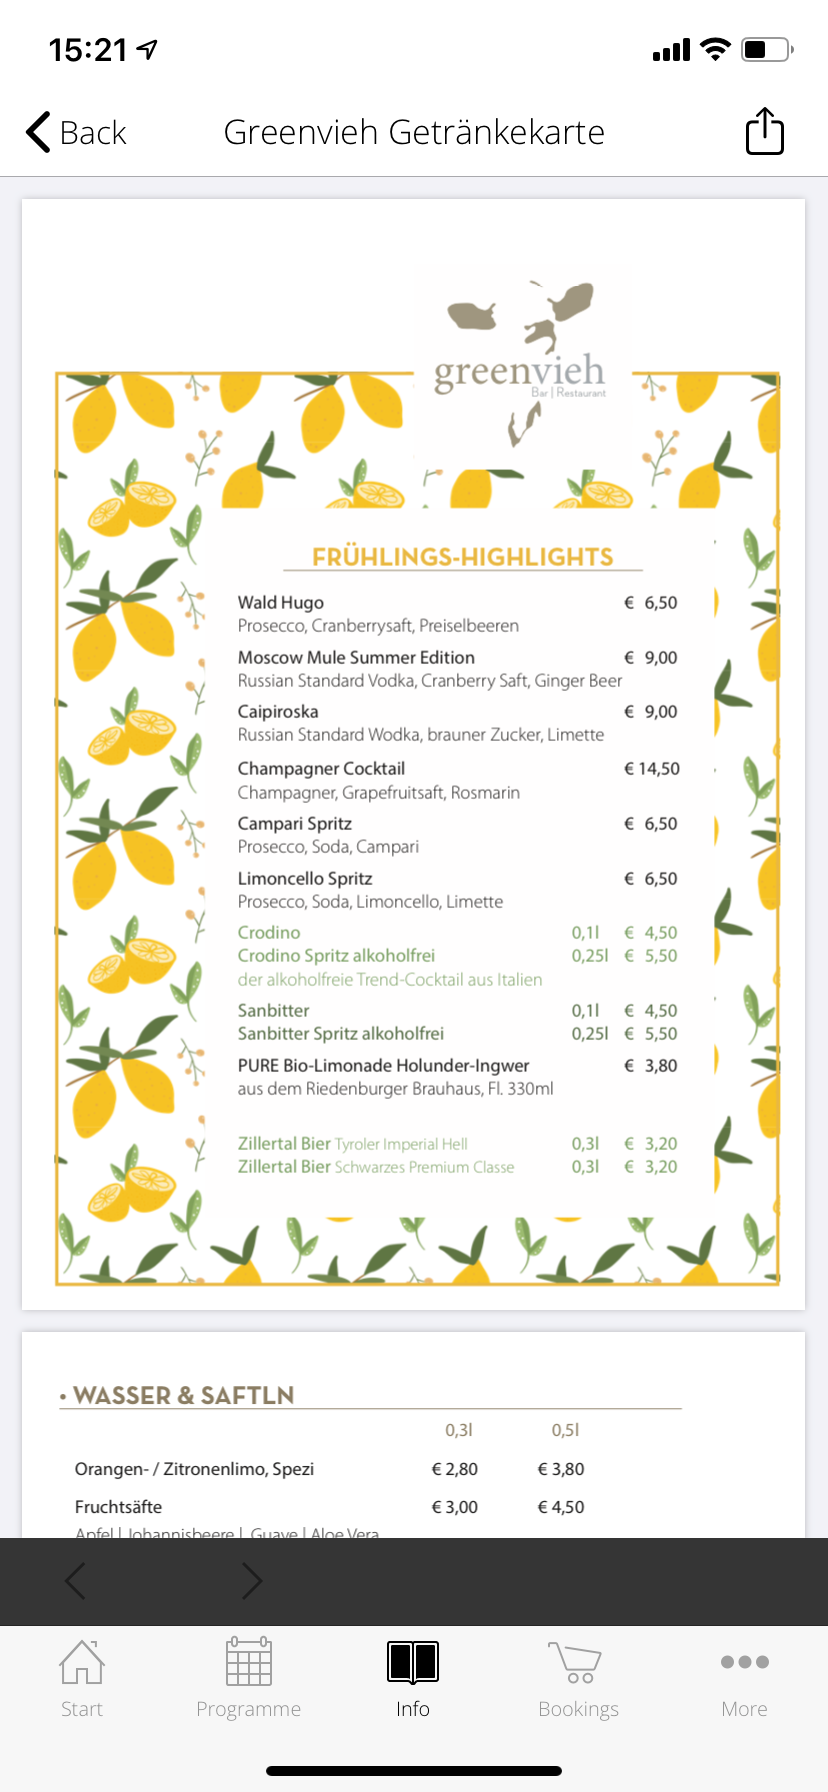 Example of a digital menu card